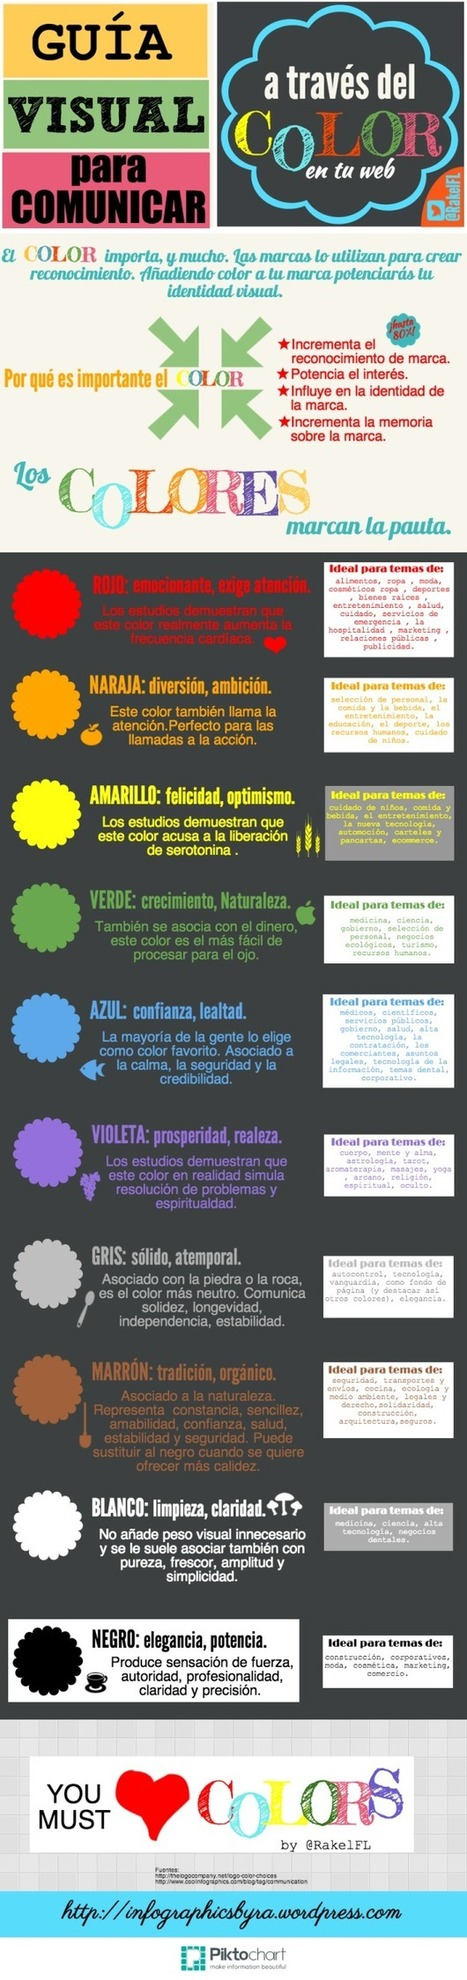 Guía visual para comunicar con el color en tu web #infografia #infographic #marketing | Educación y nuevas tecnologías | Scoop.it